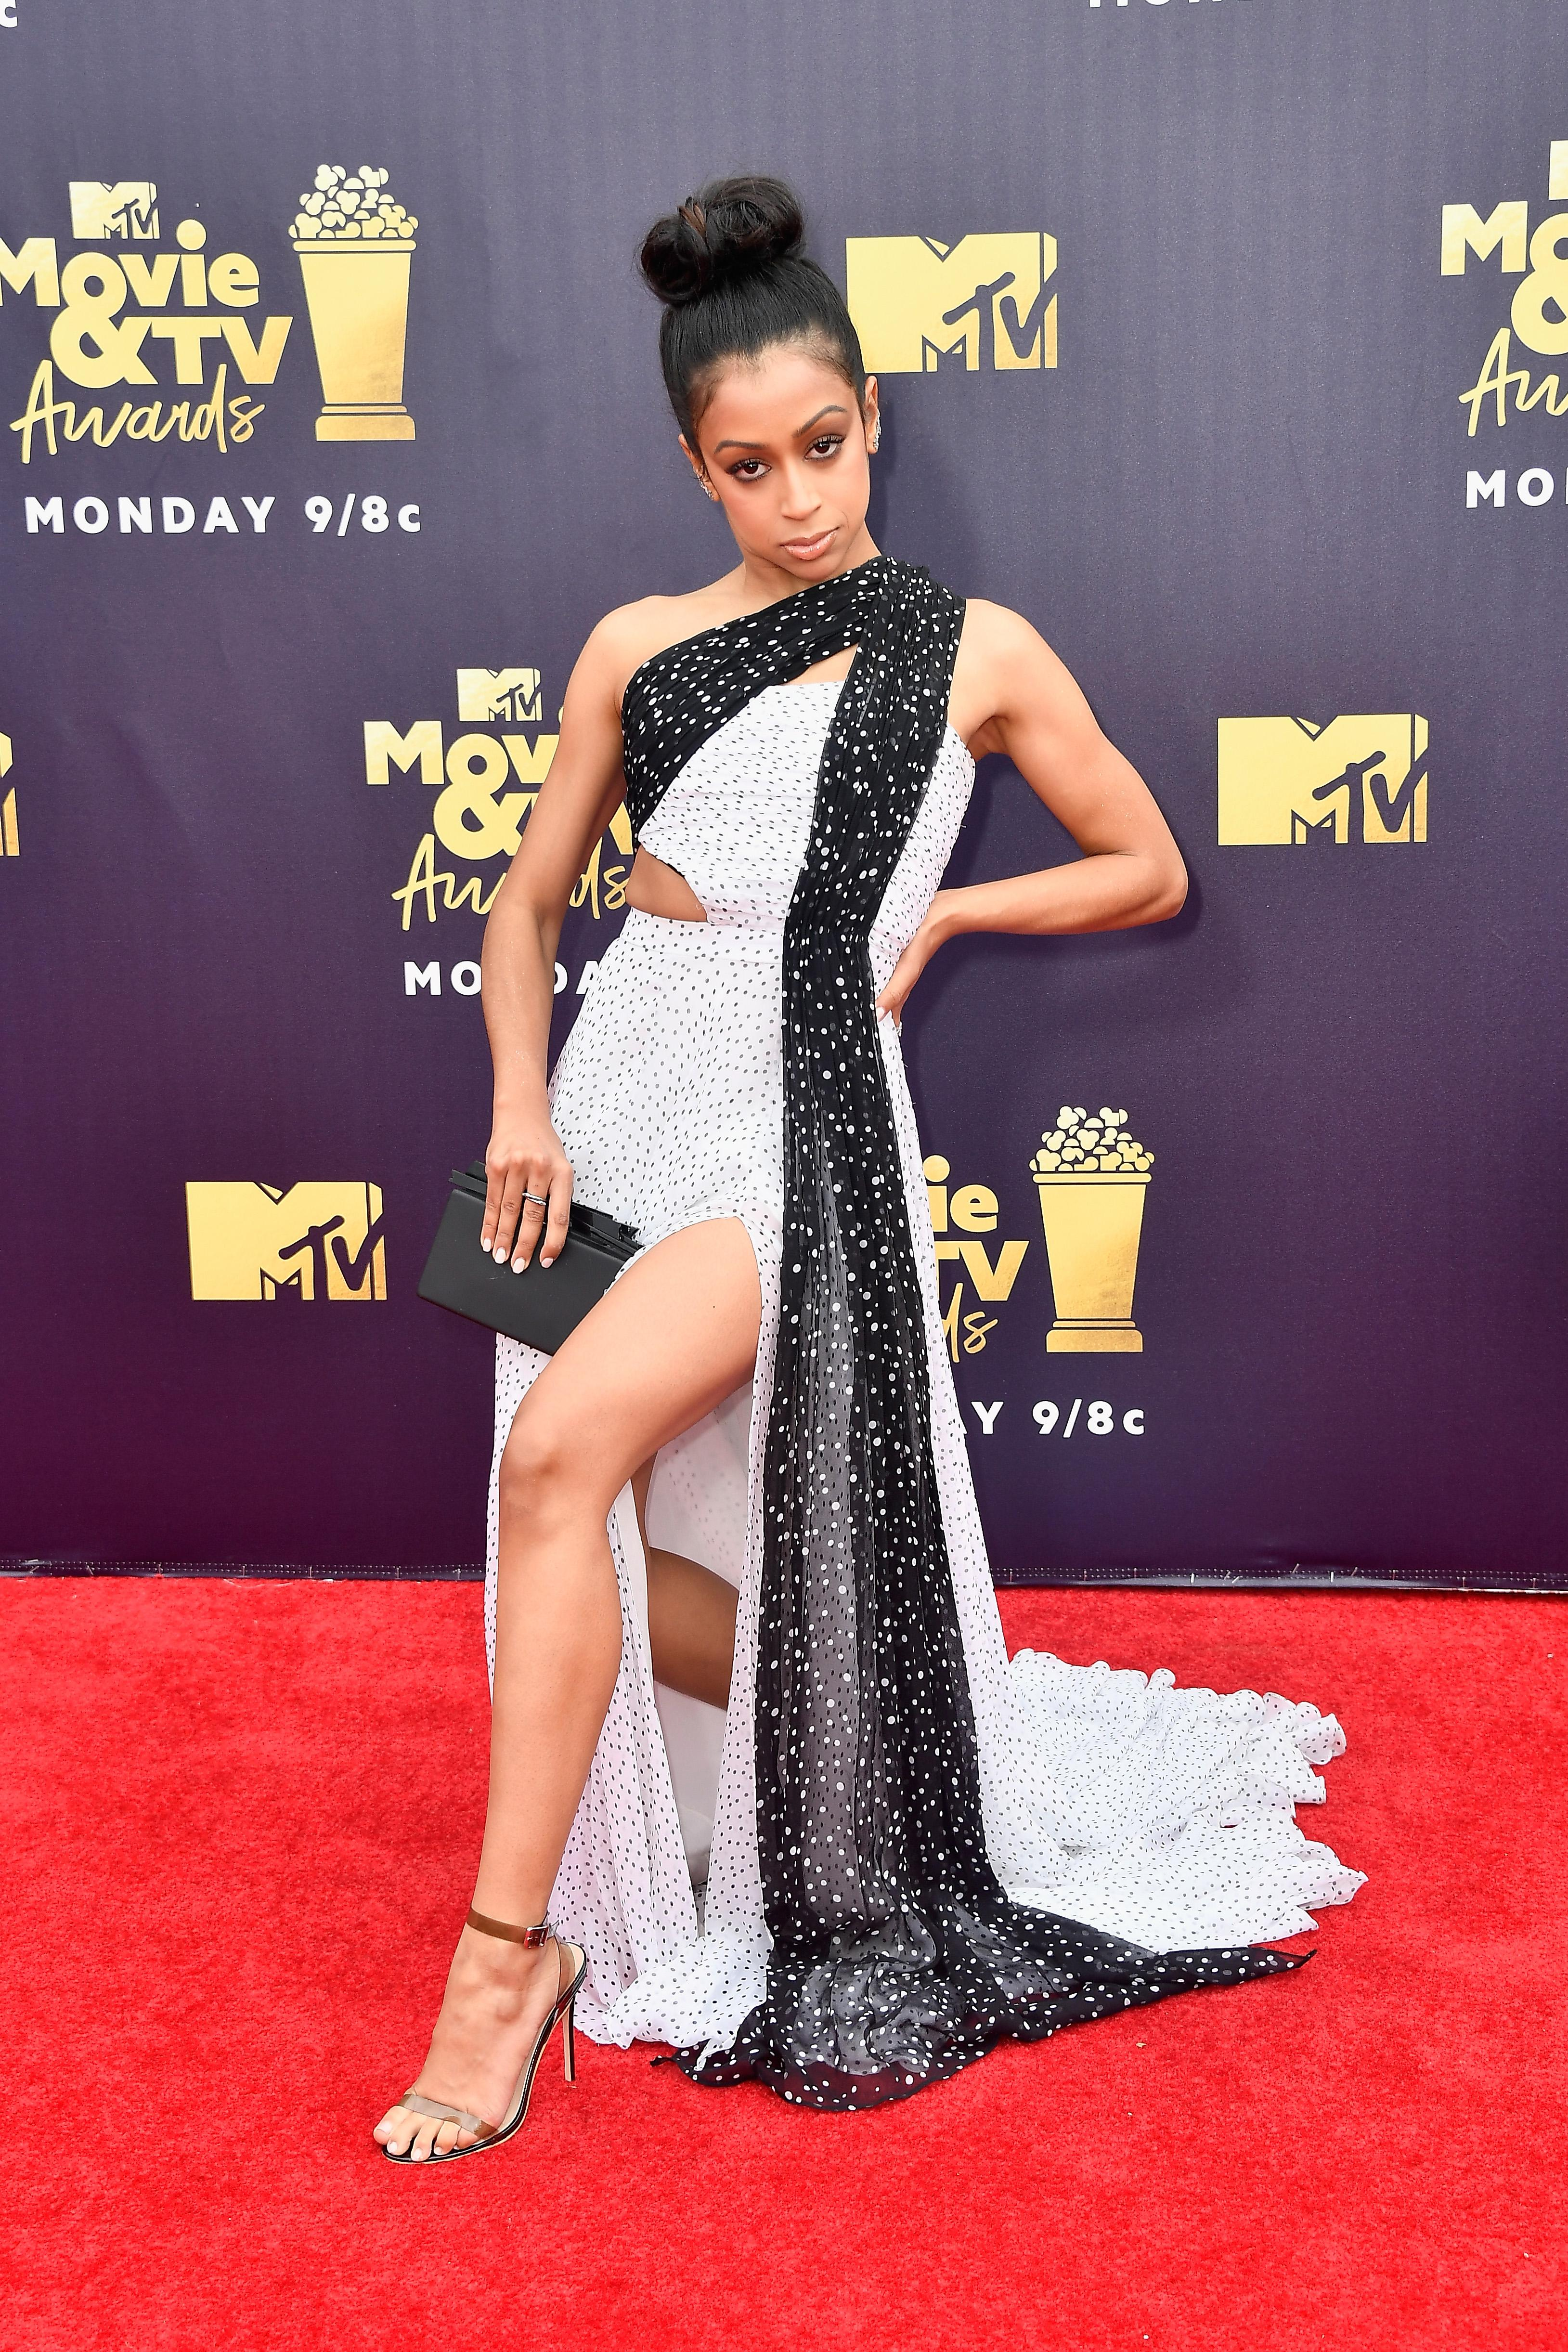 Mtv Movie And Tv Awards 2018 Red Carpet Hottest Celebrity Fashion Looks